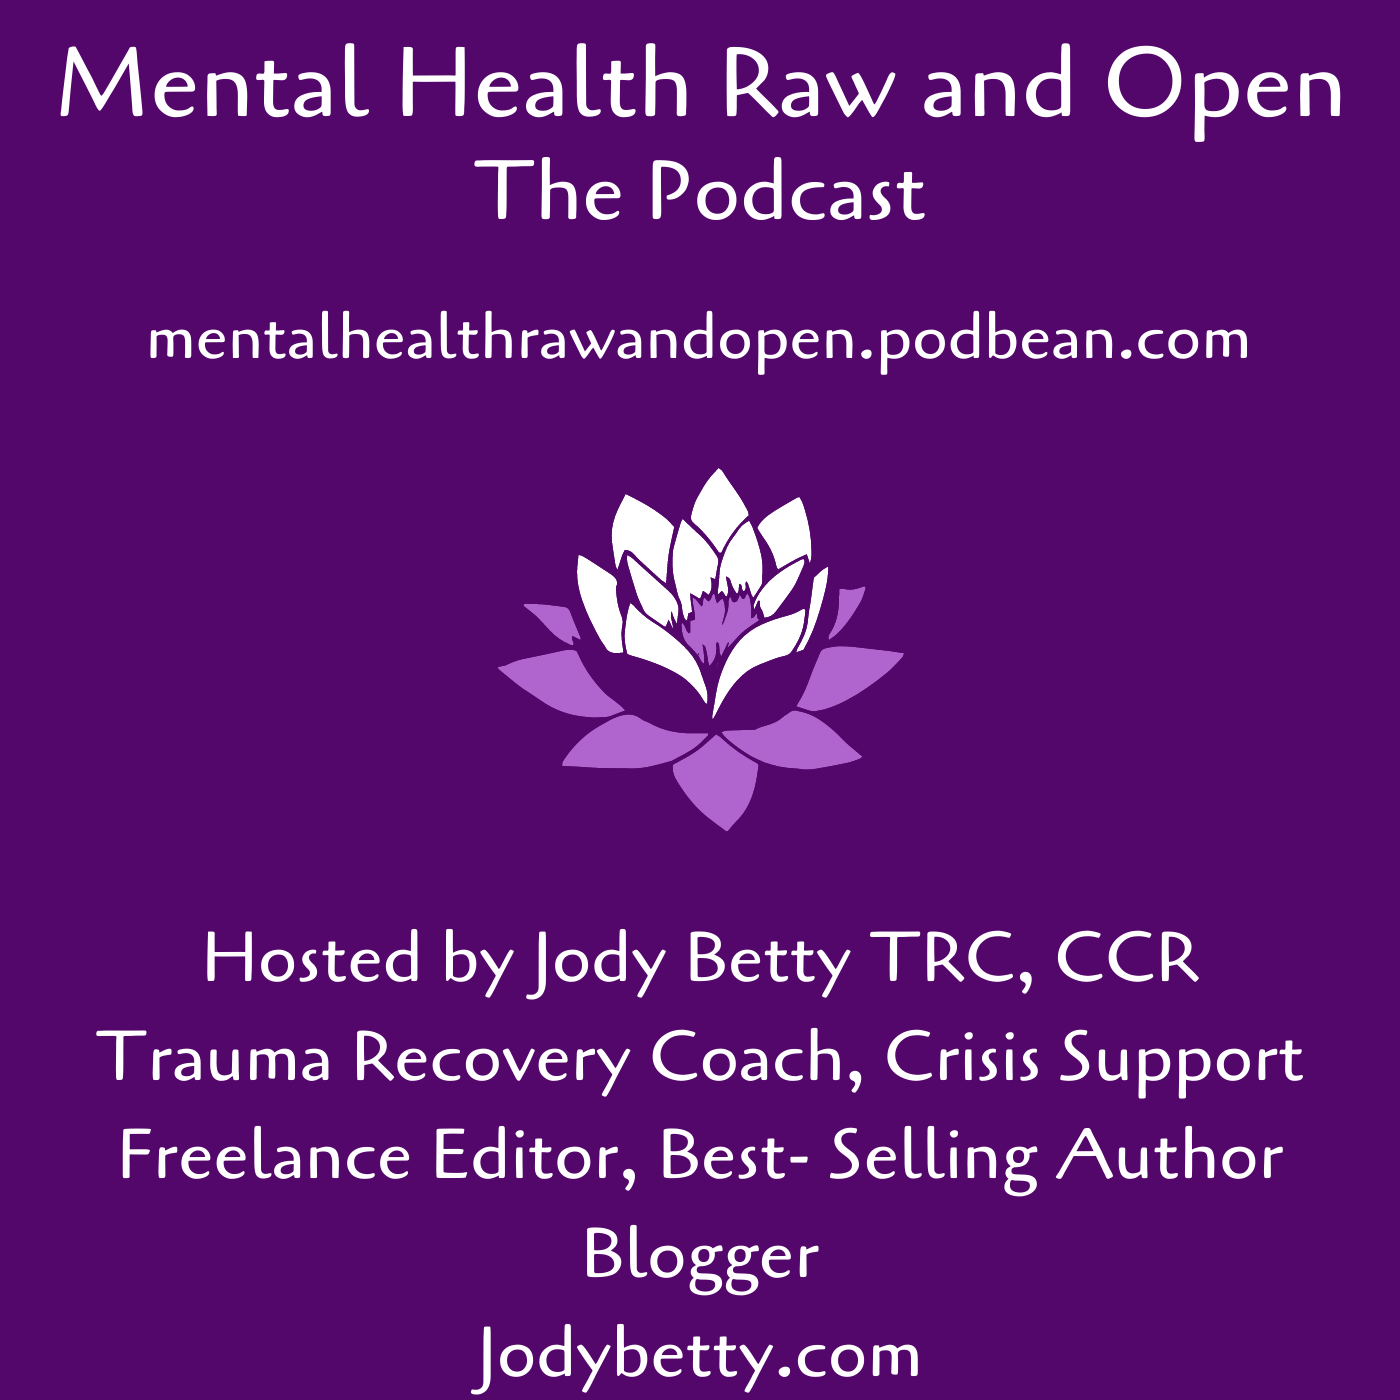 Mental Health Raw and Open Podcast